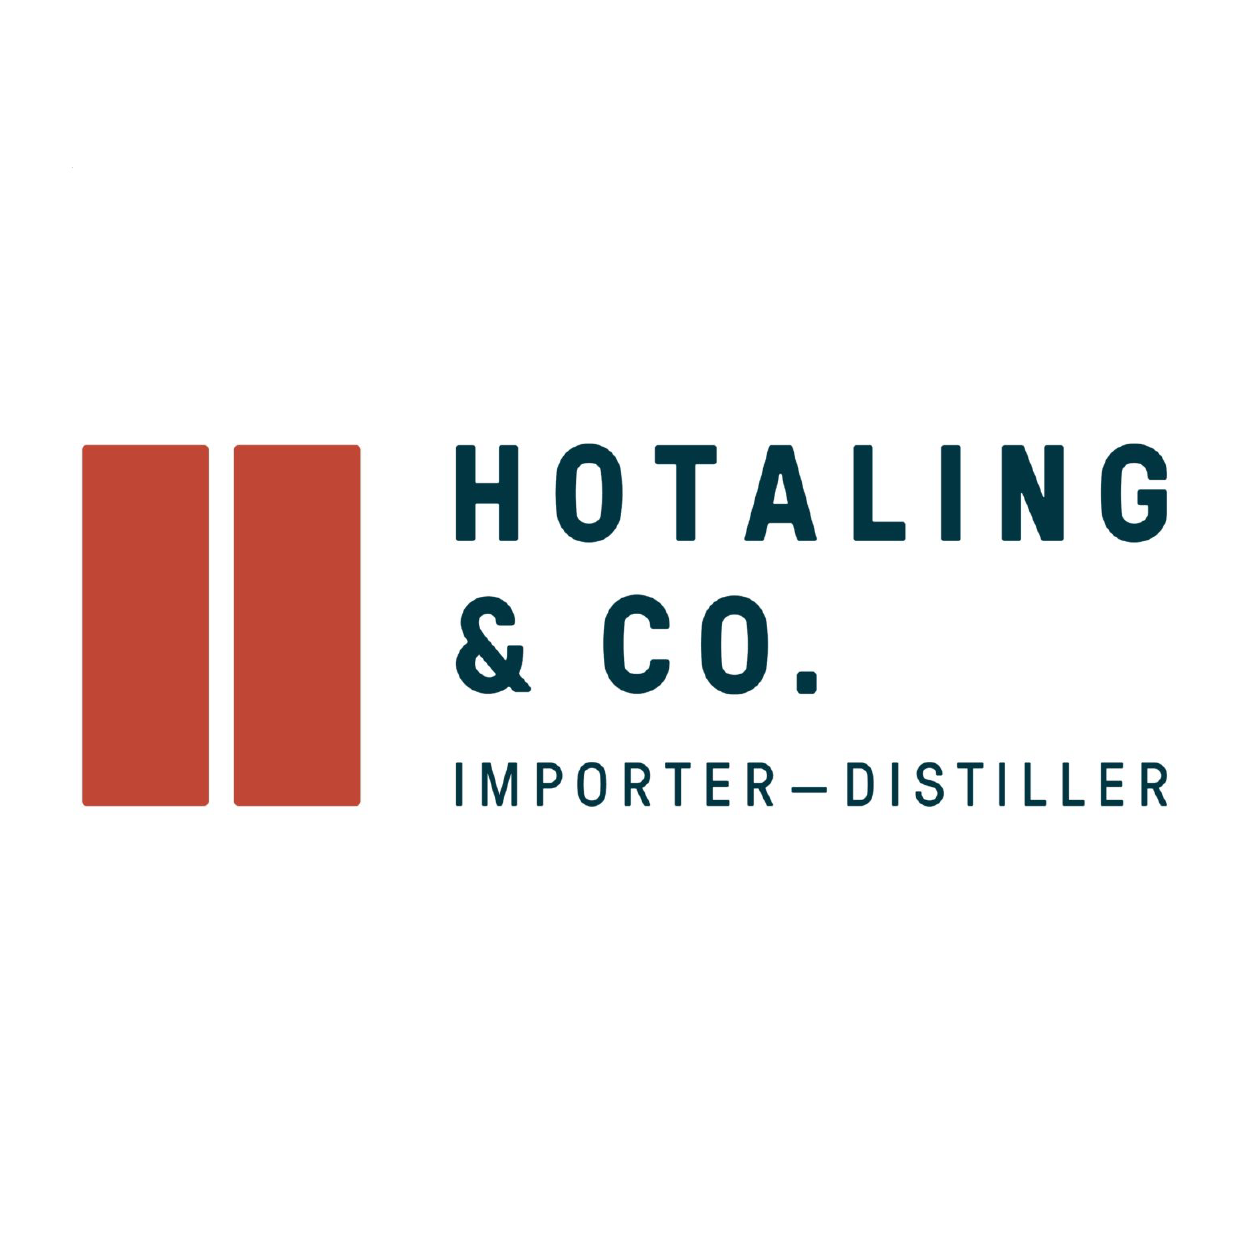 Hotaling & Co-01.png